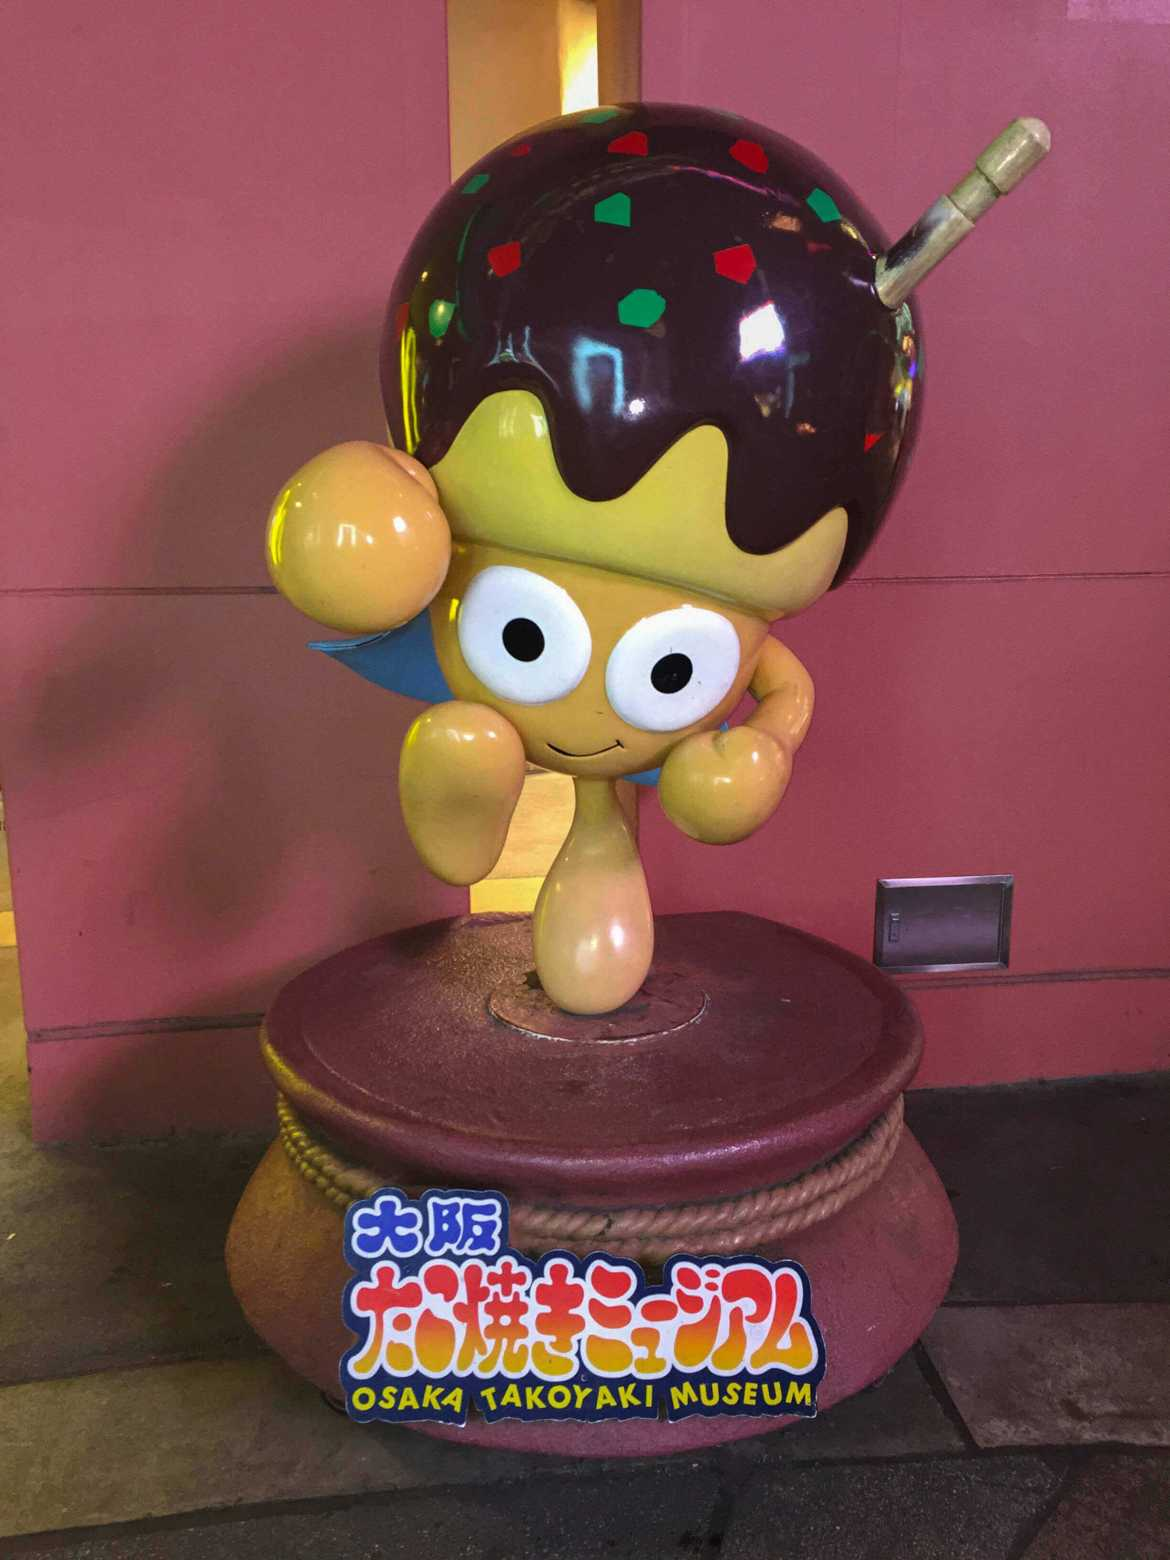 The mascot of Osaka Takoyaki Museum